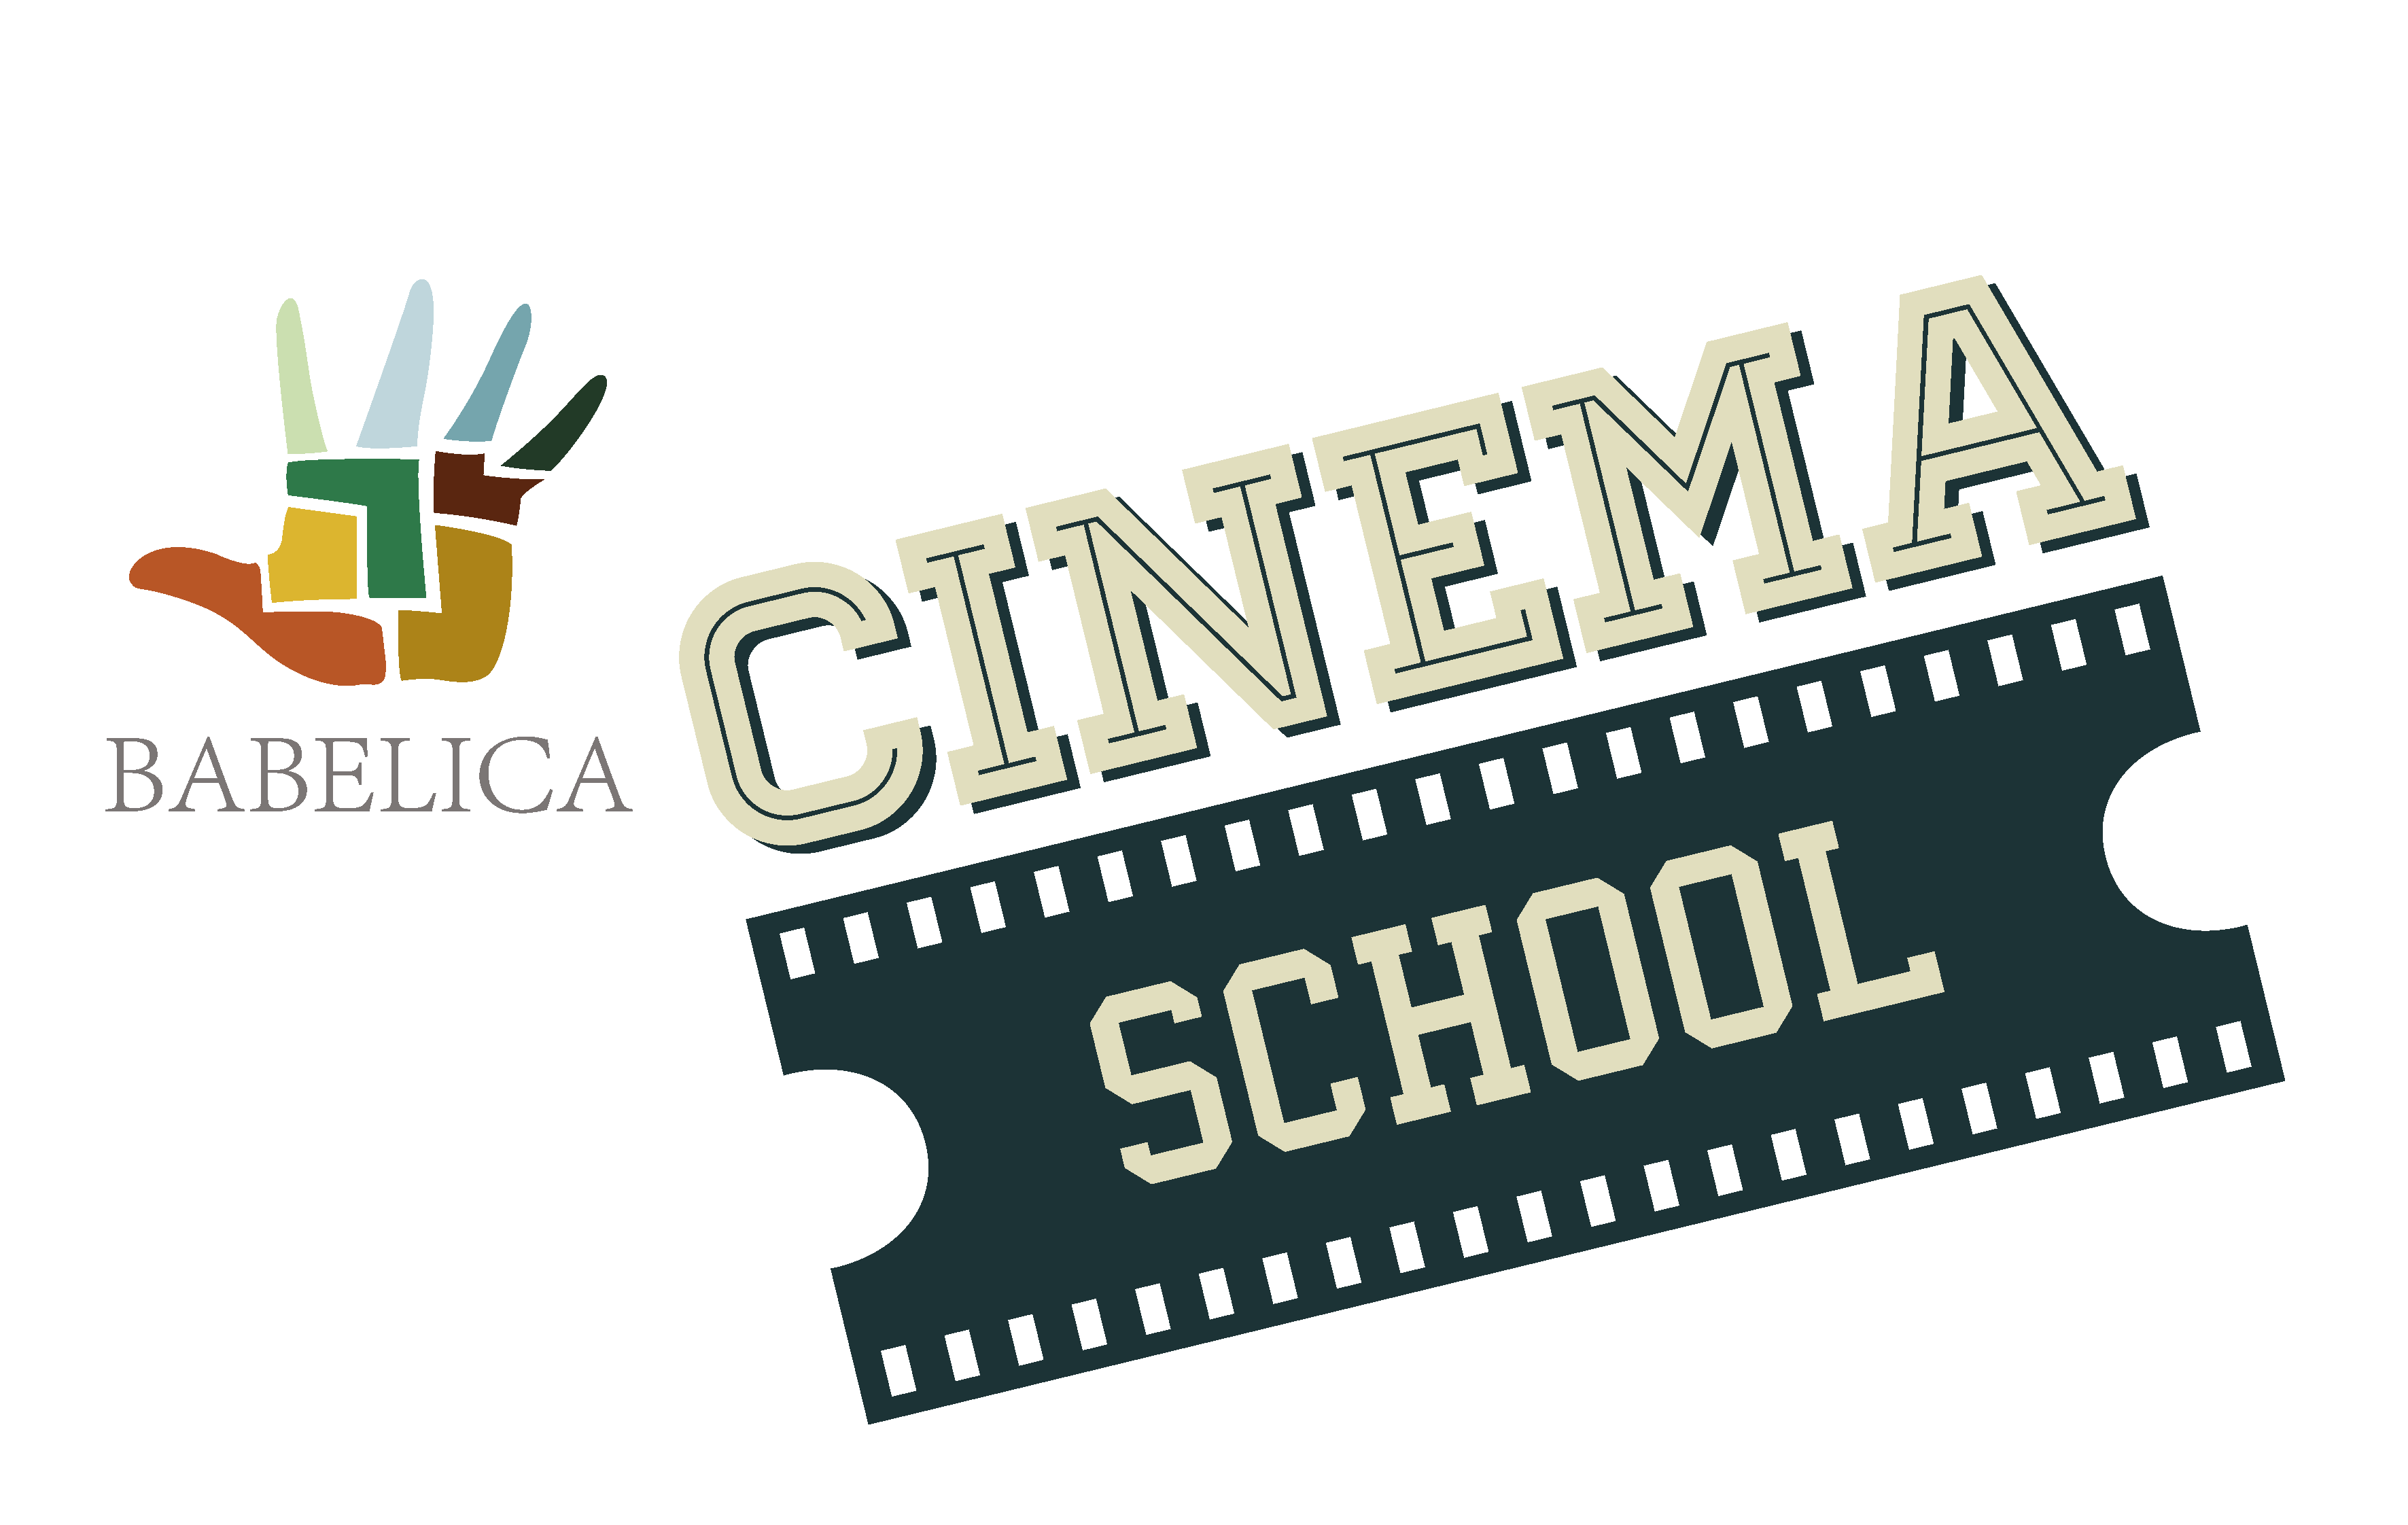 Babelica Cinema School